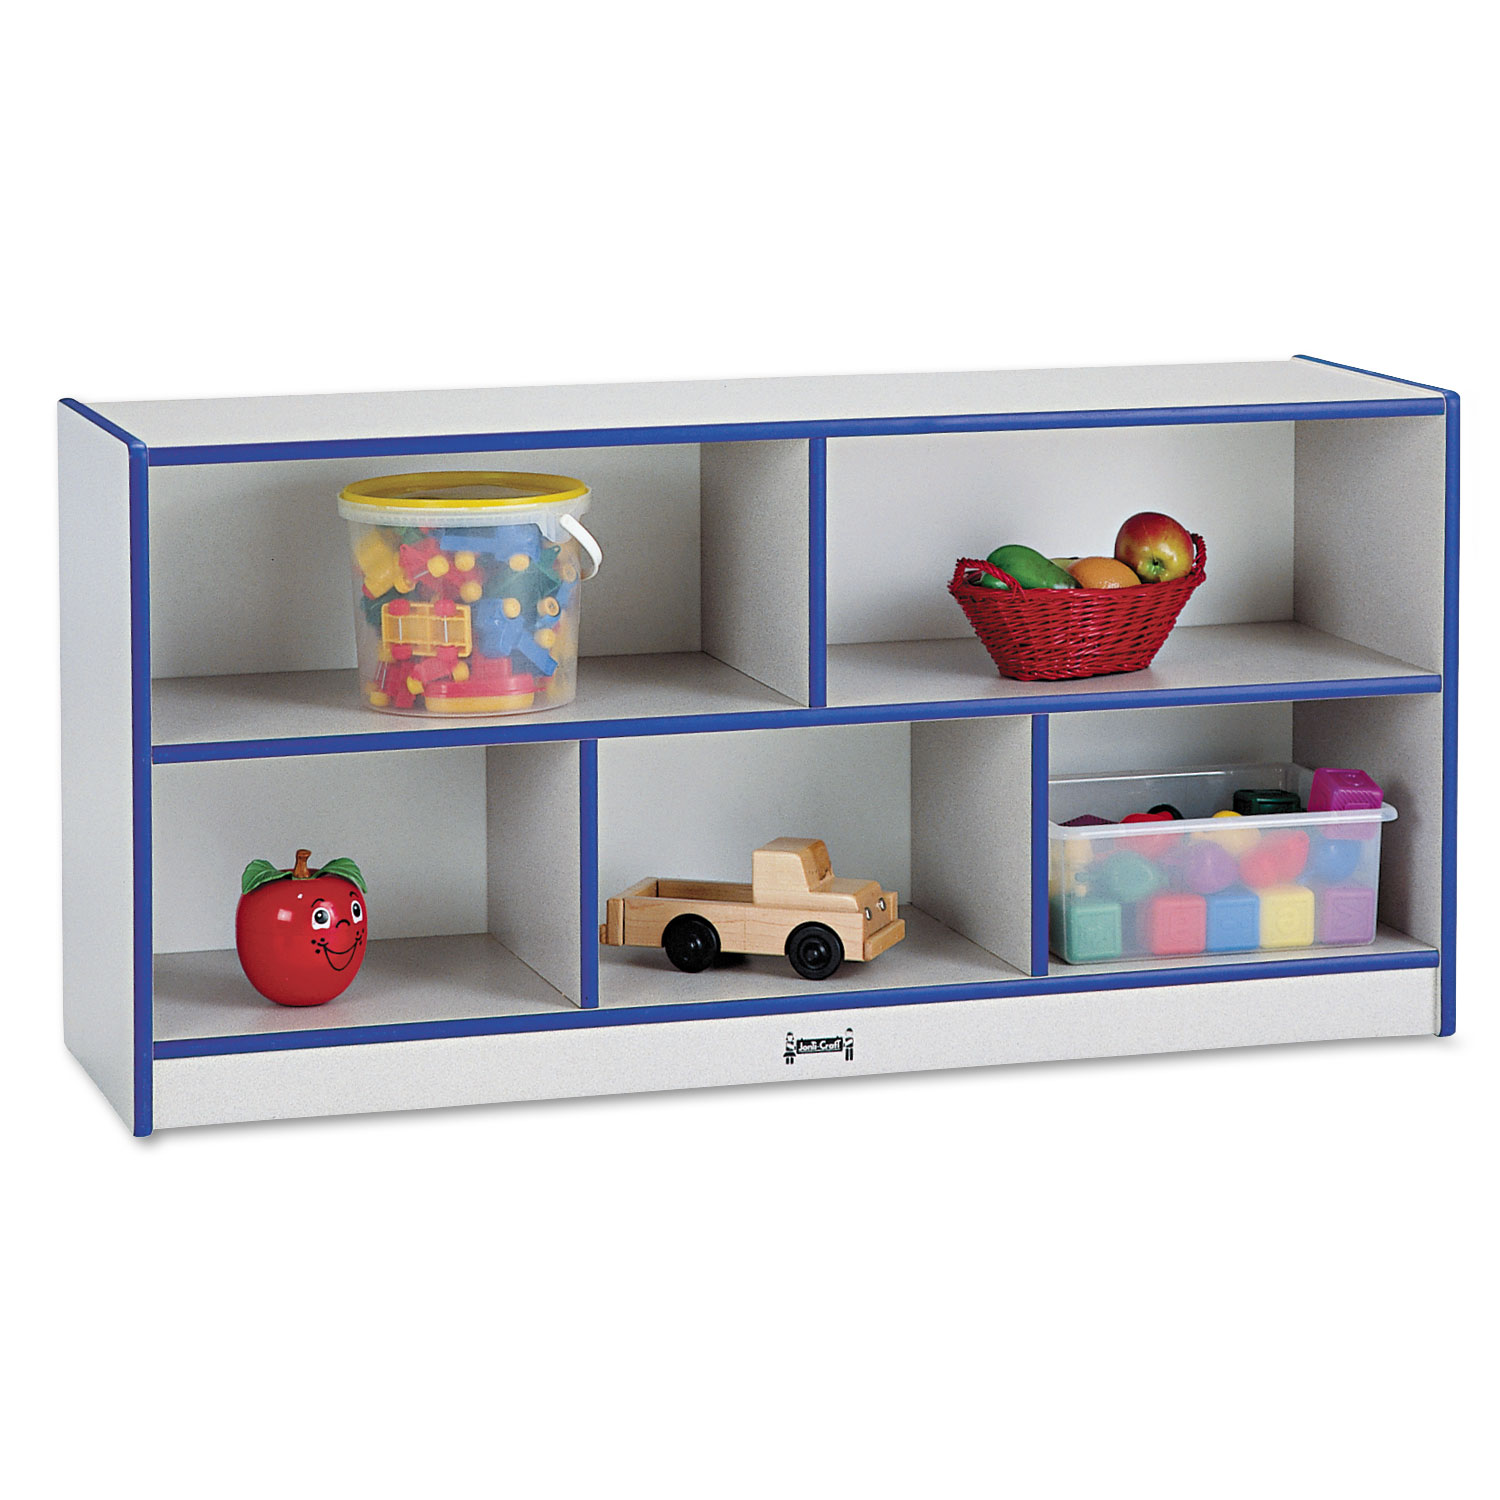 Ptm Images 12 In X 12 In The Color Purple Laminated: Rainbow Accents Single Storage Units, 48w X 15d X 24-1/2h